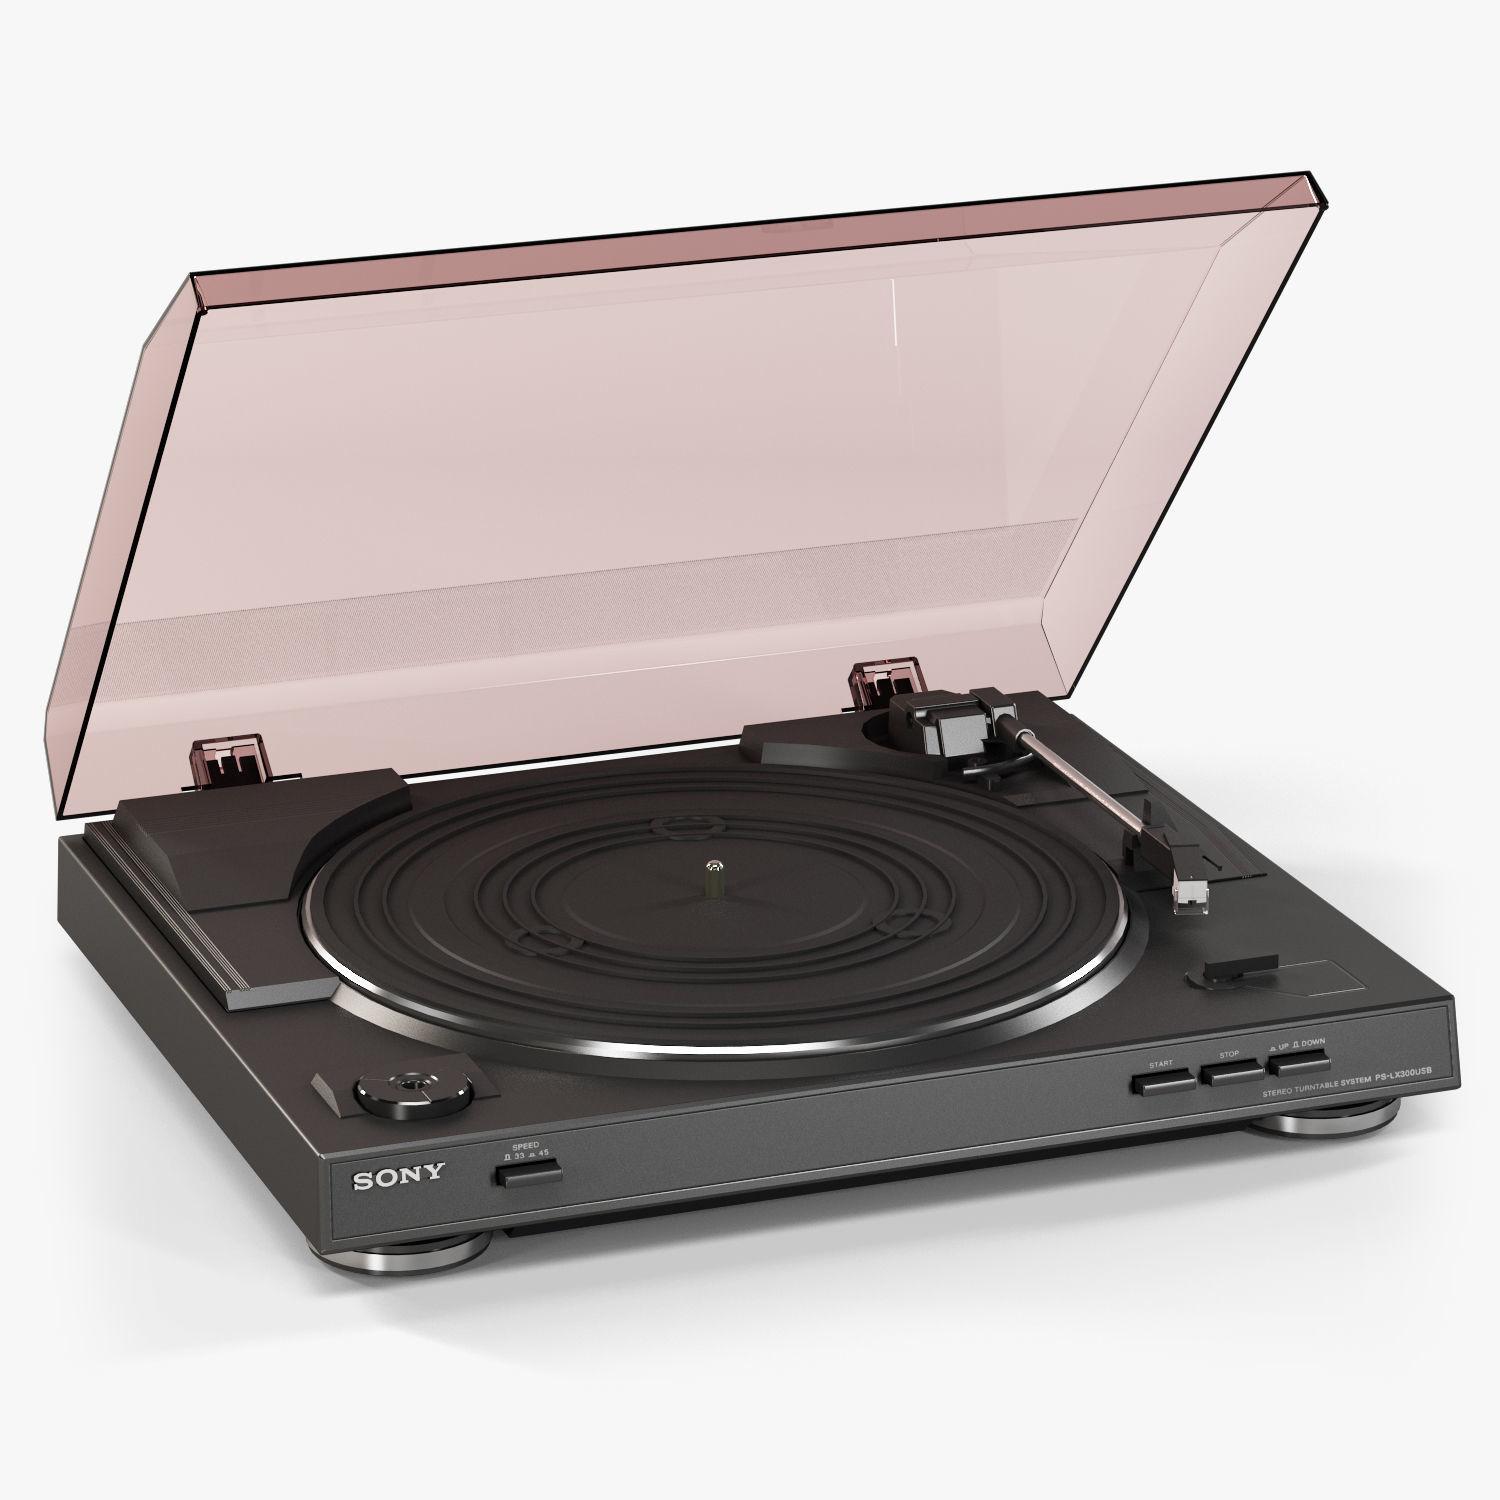 Sony PS-LX300USB Stereo Turntable